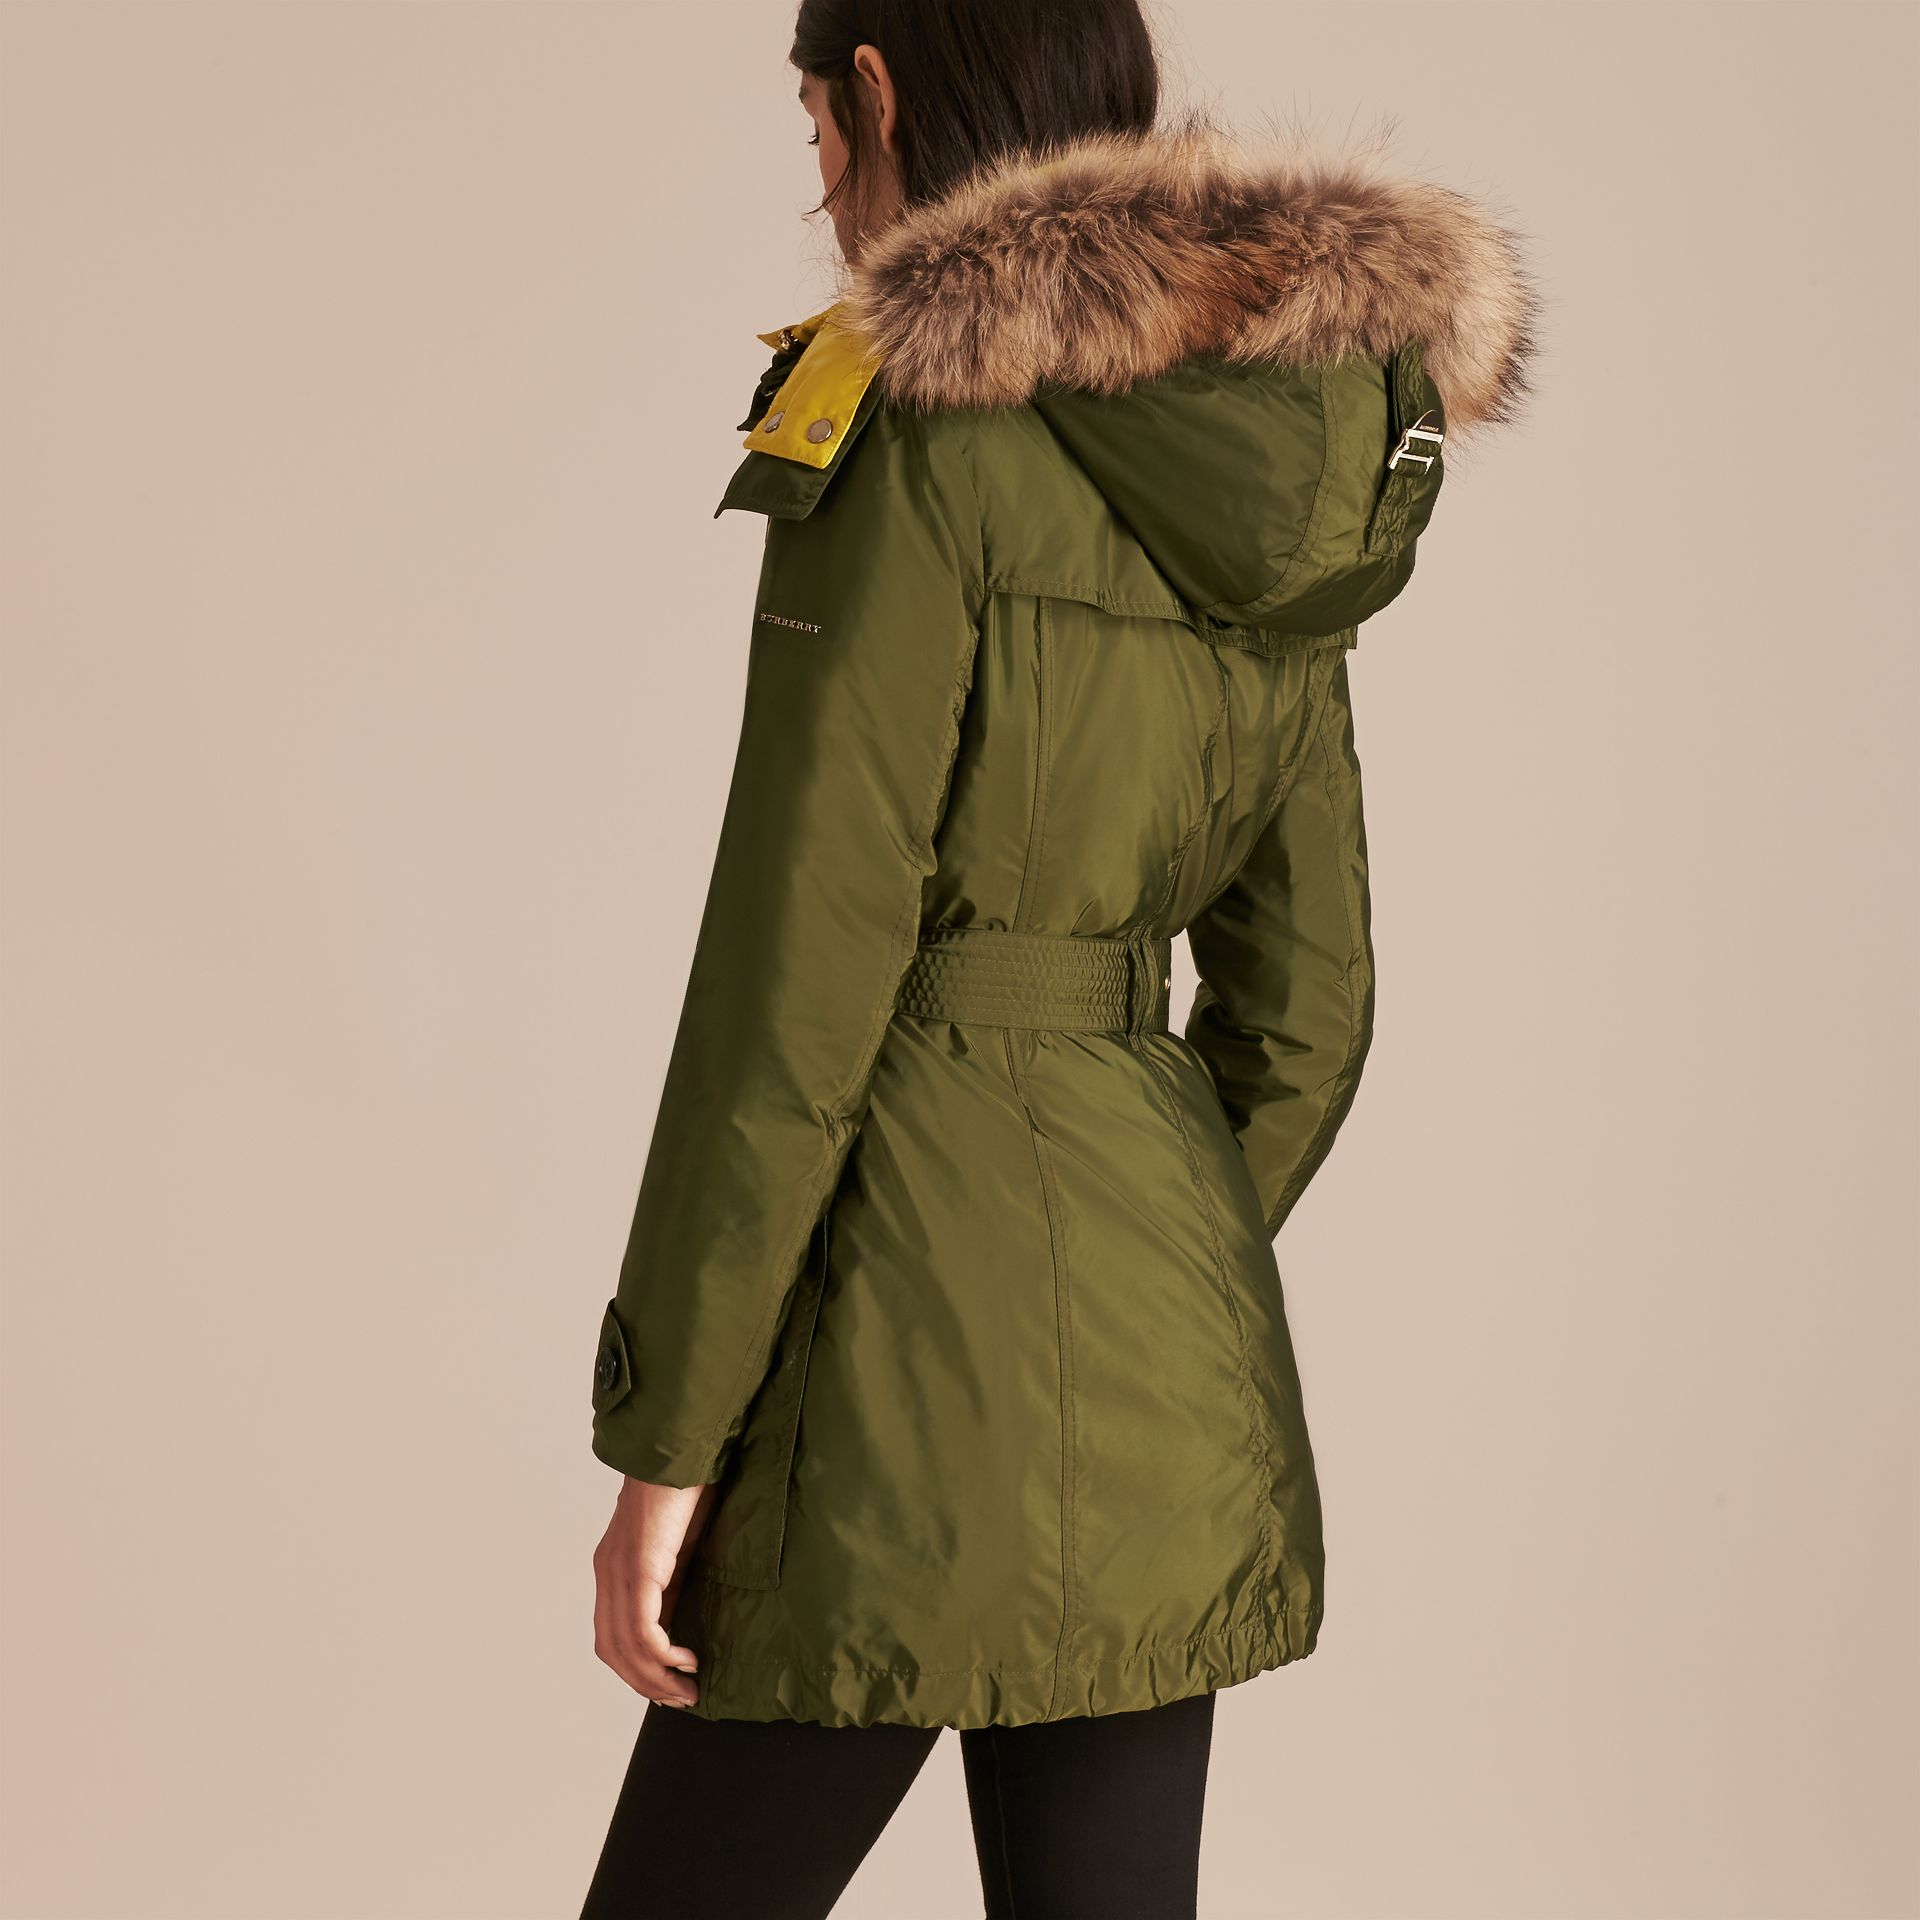 Fur-trimmed Parka with Detachable Down-filled Jacket Bright Moss Green - gallery image 7